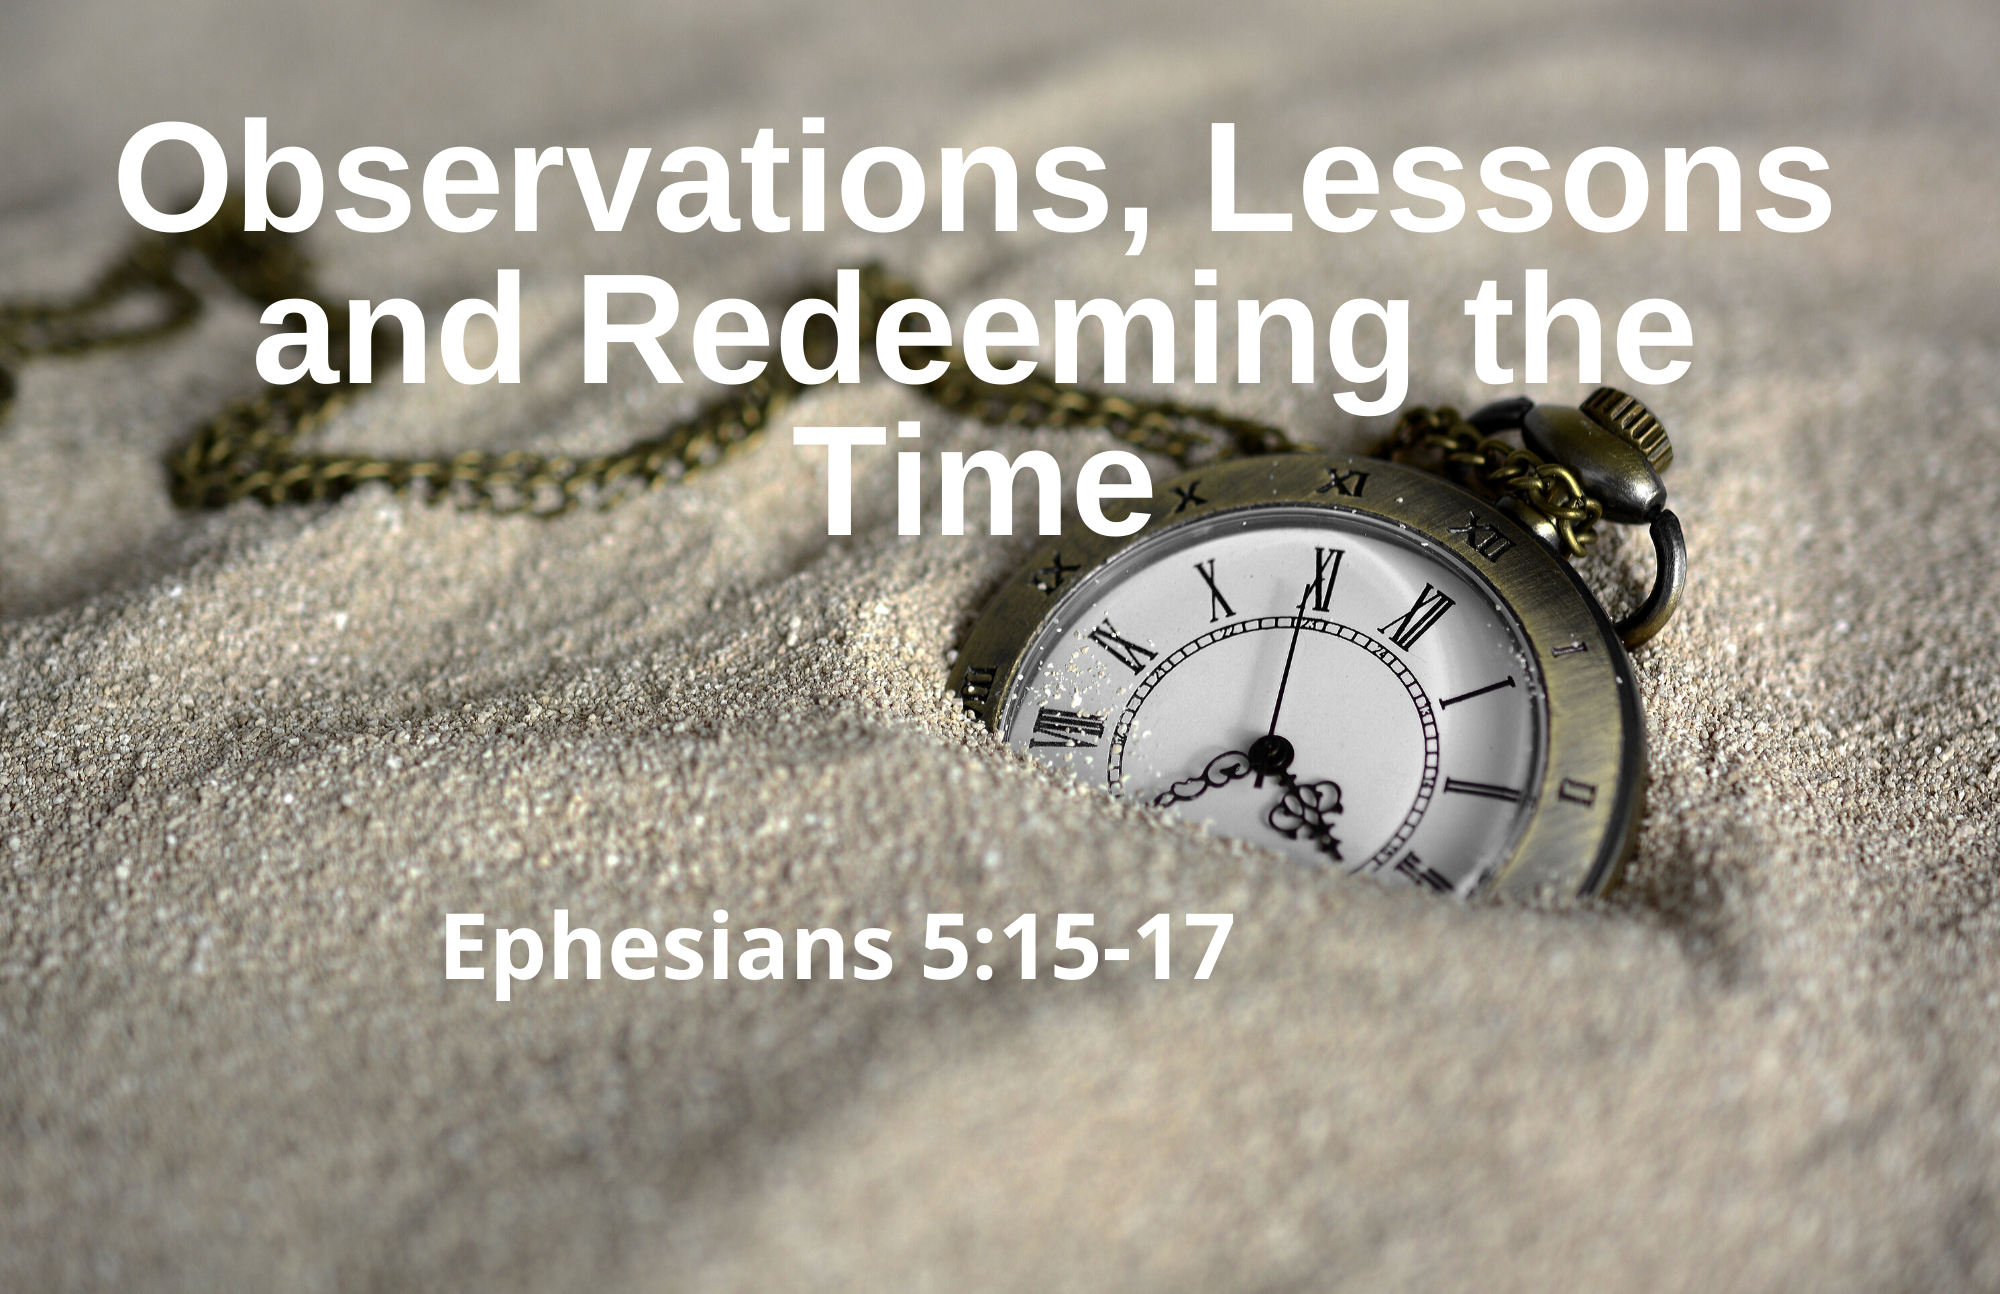 Observations, Lessons, and Redeeming the Time